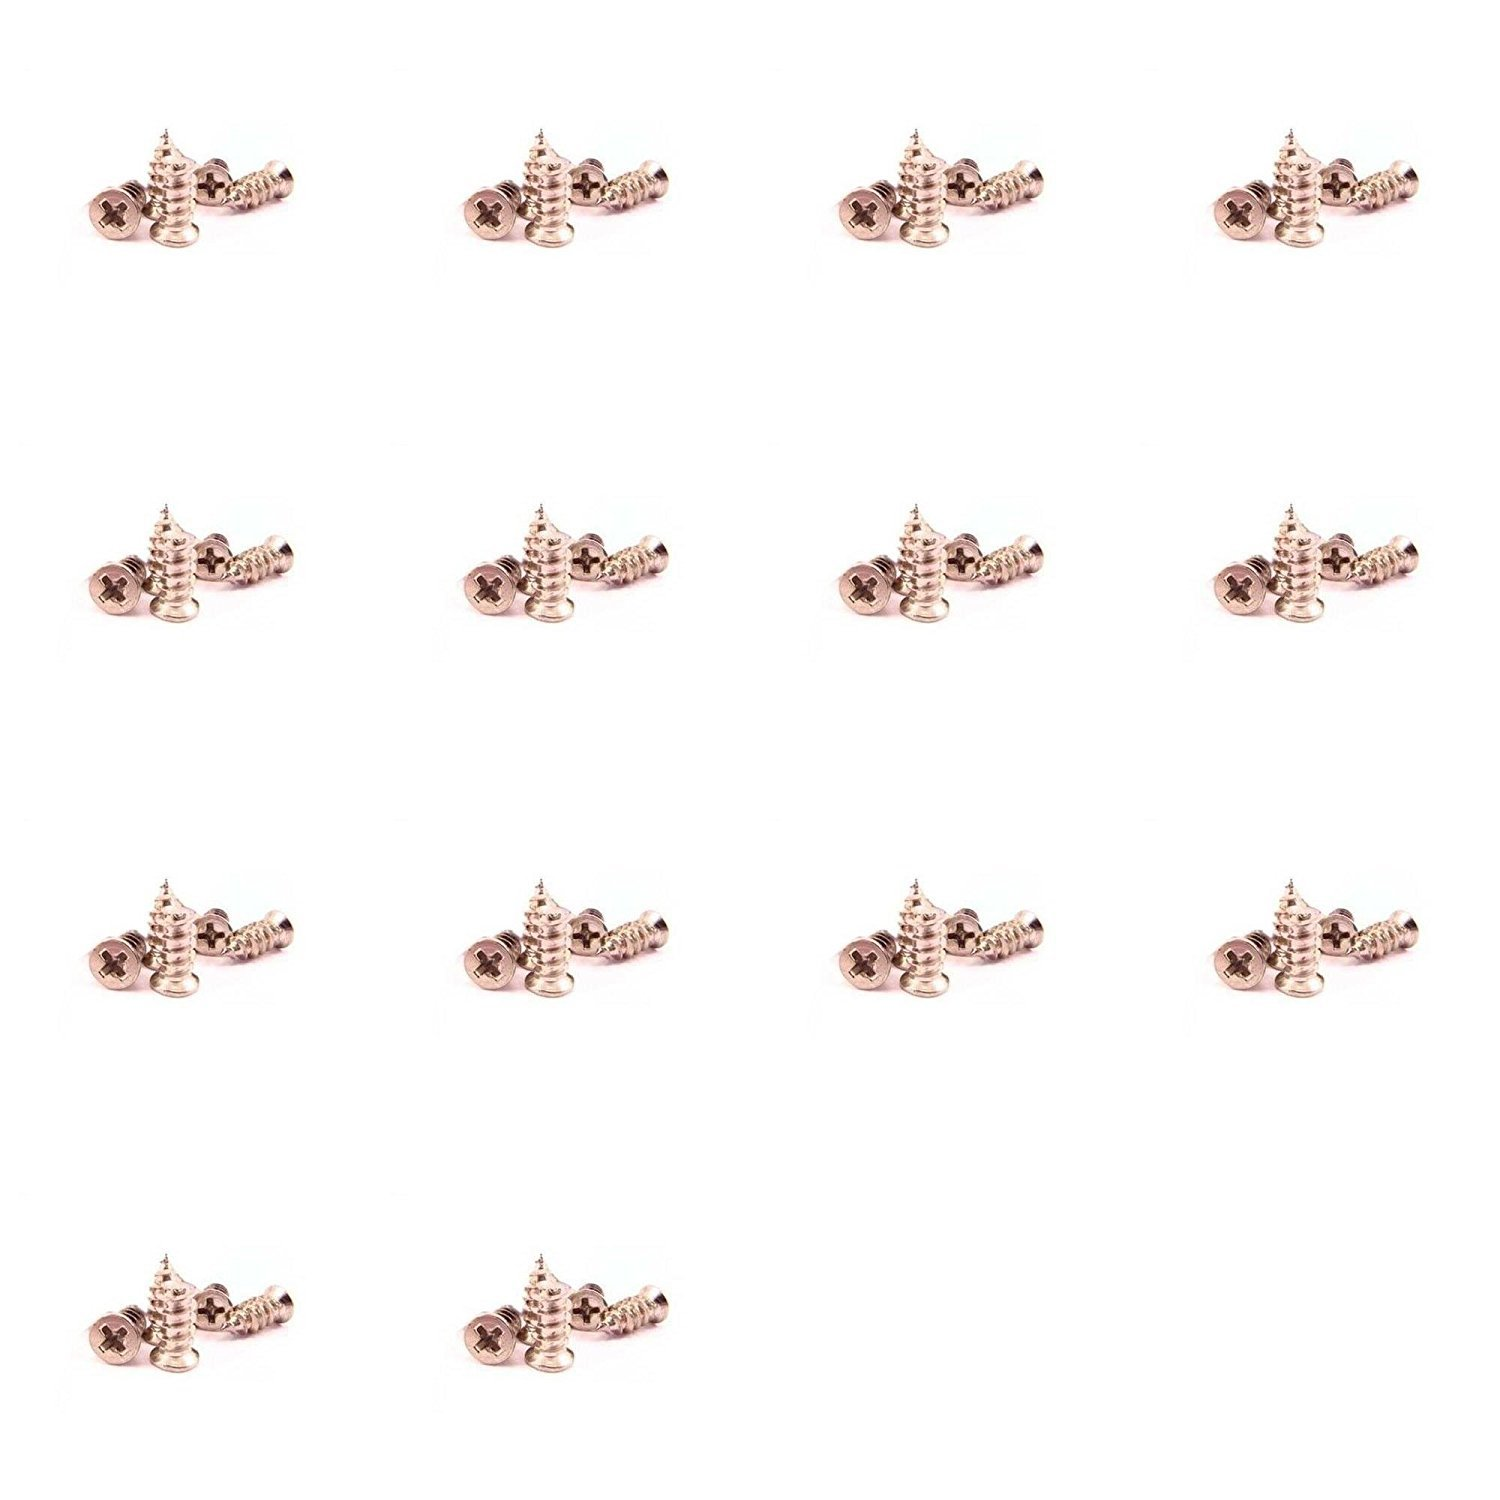 14 x Quantity of Estes Dart Screw Fastener Set Quadcopter Replacement Parts - FAST FREE SHIPPING FROM Orlando, Florida USA!